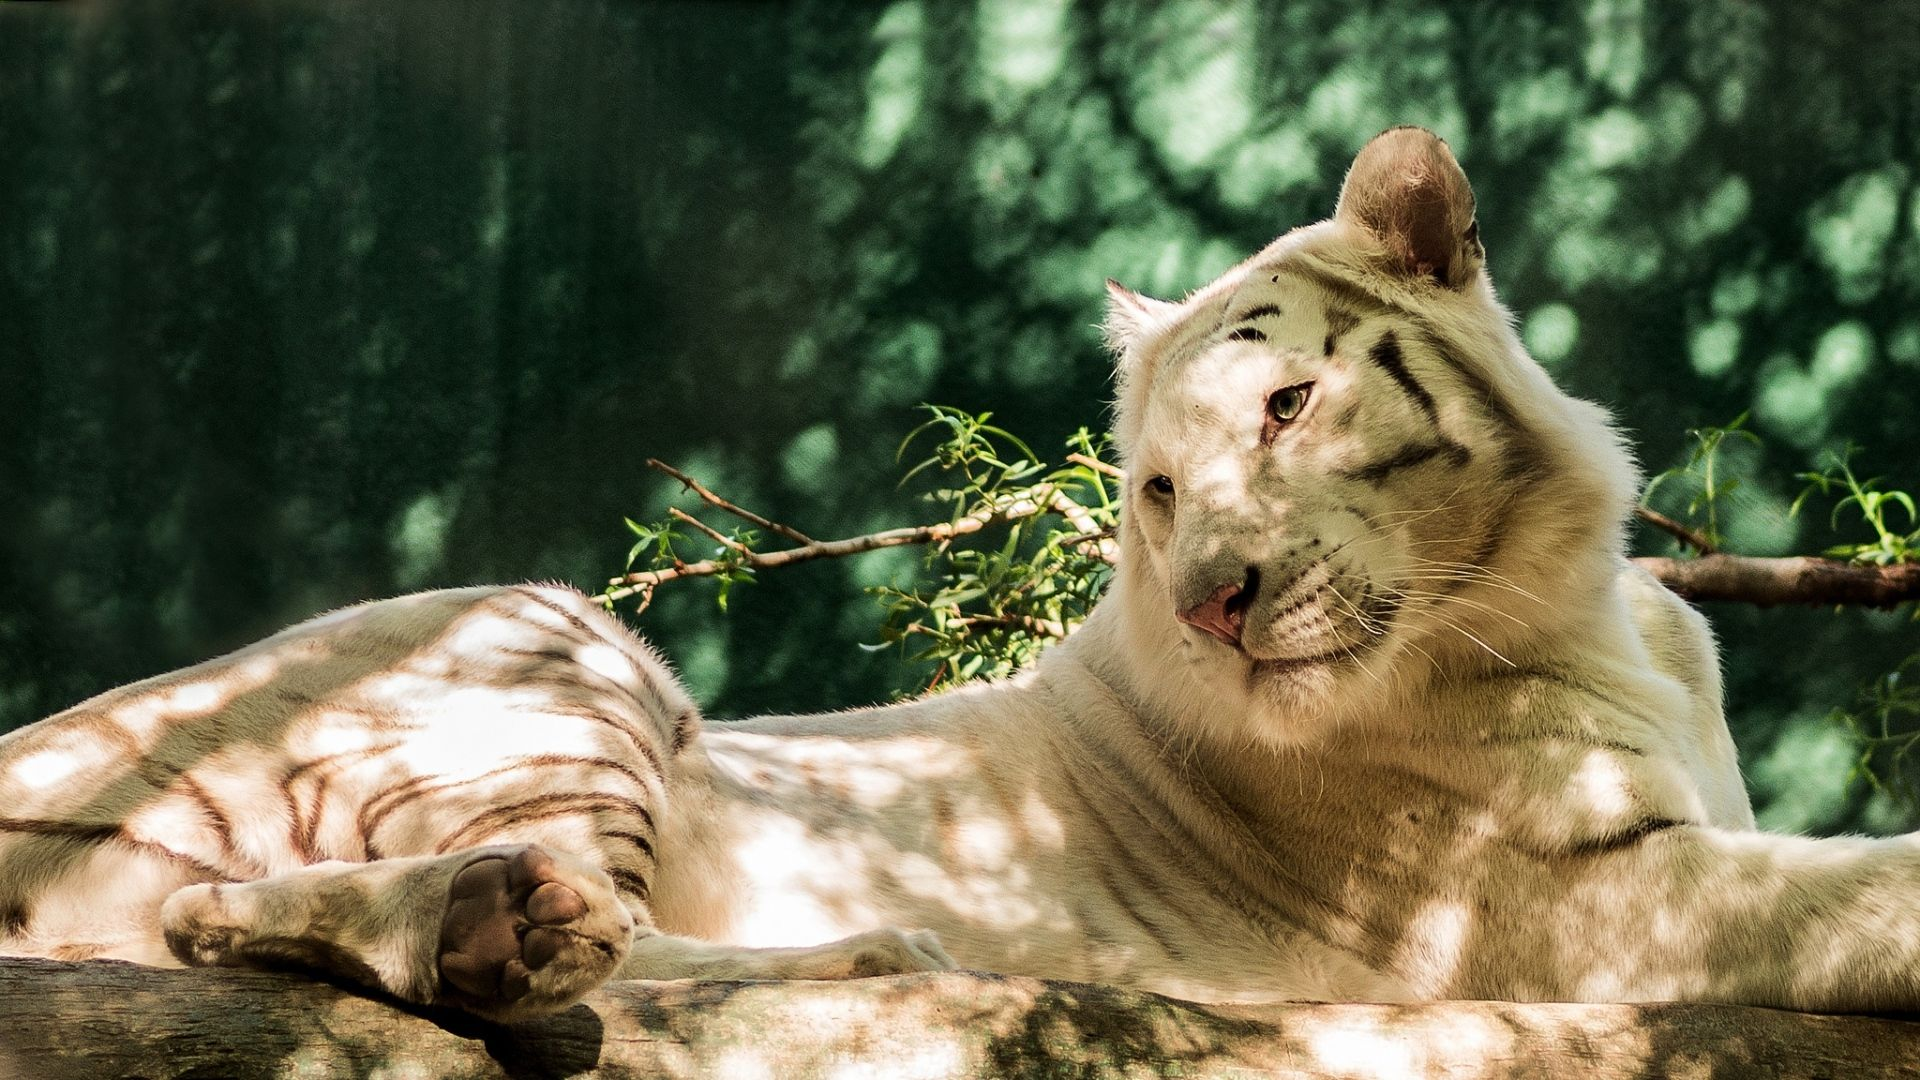 White tiger thought about life, HD Wallpaper 1080